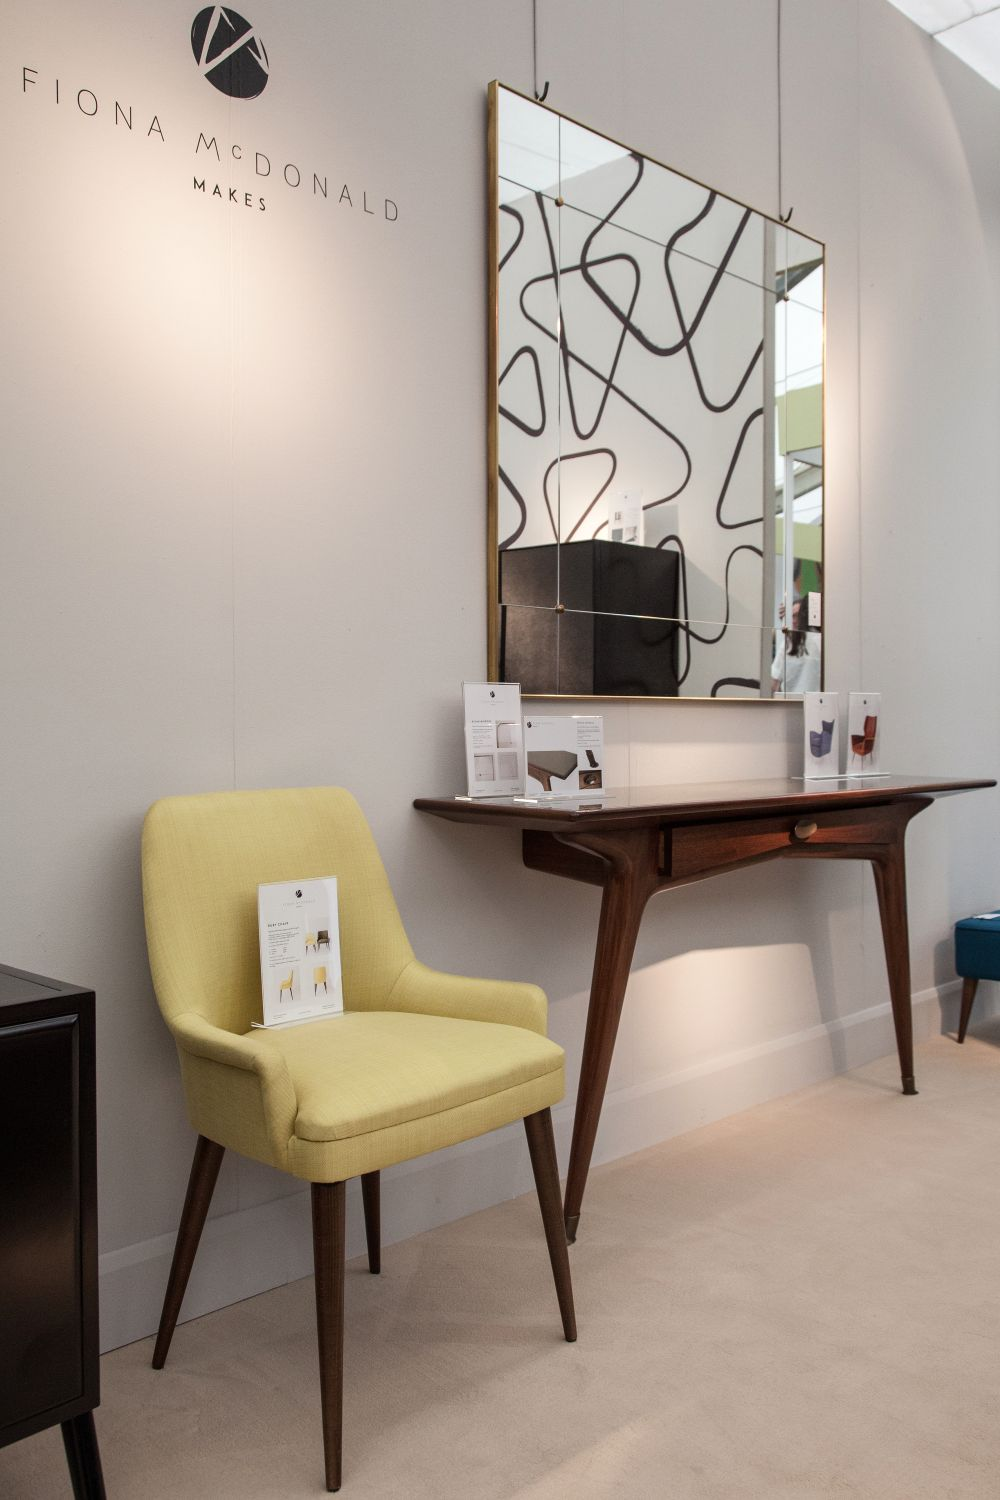 A Narrow Console Table – The Missing Link In Your Home Decor